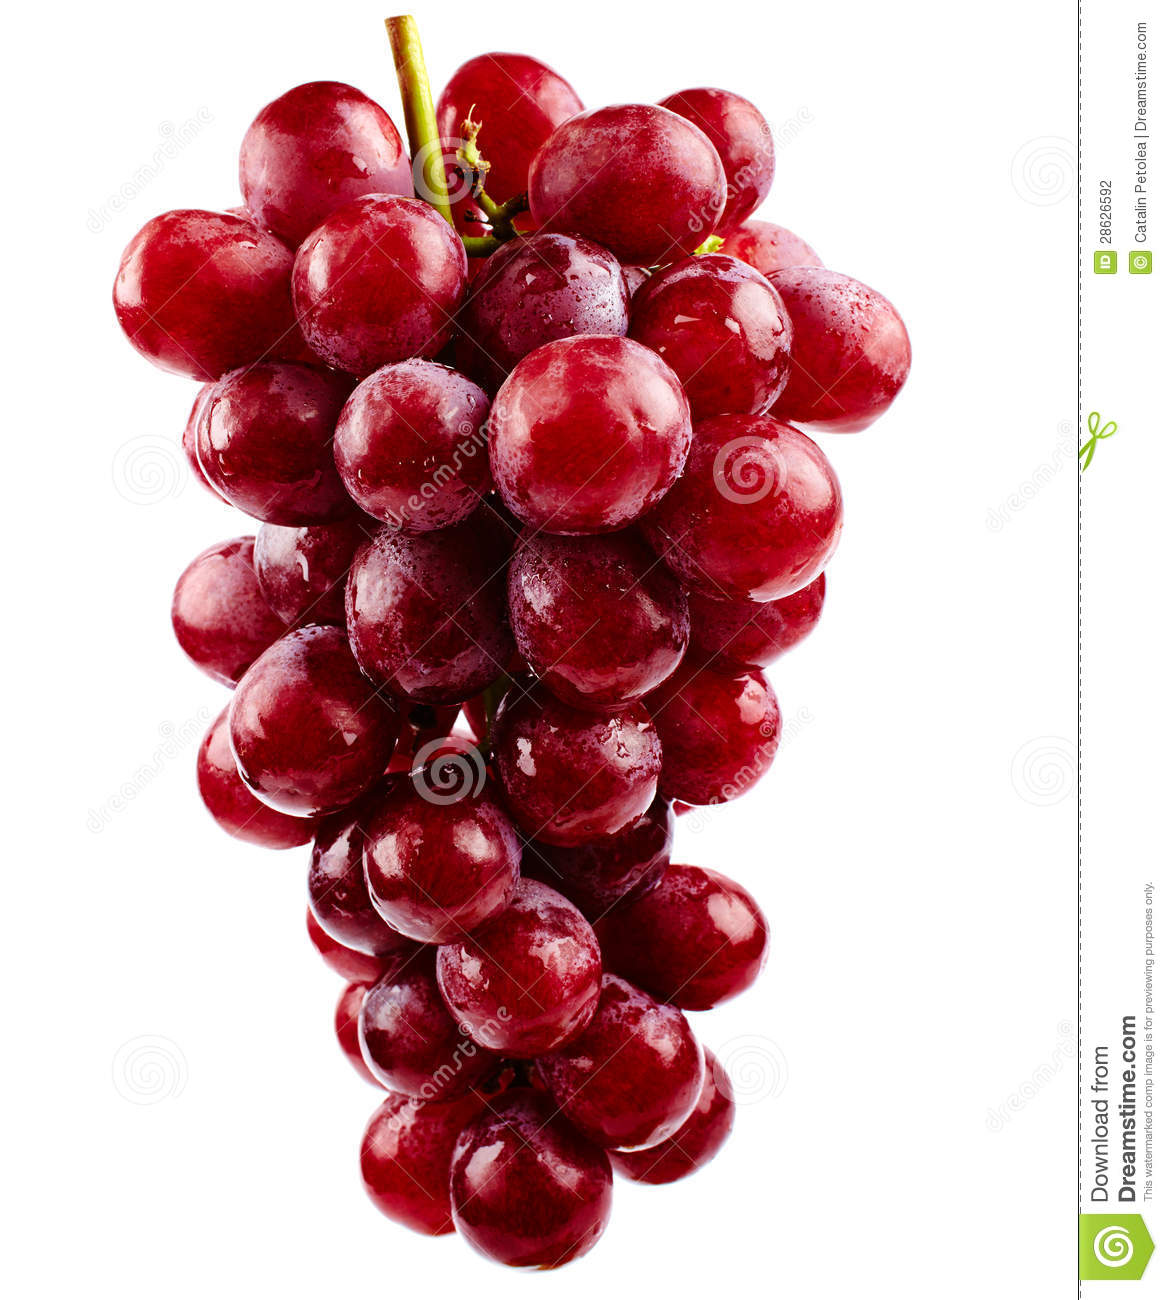 Red Grapes have the same properties that are in anti-ageing creams.